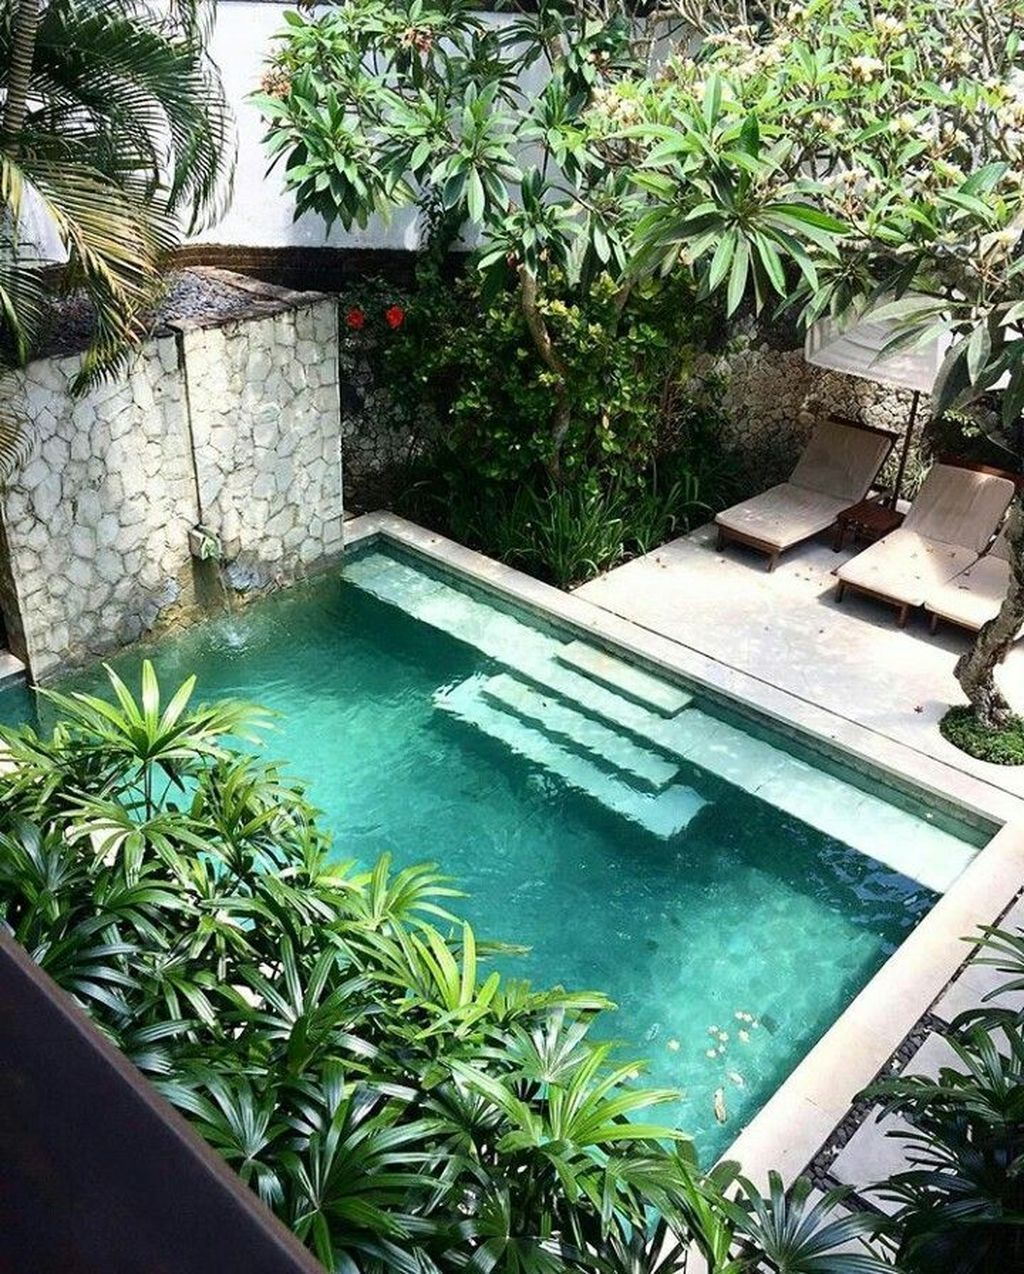 33 Lovely Small Garden Design Ideas Small Courtyard Gardens Courtyard Gardens Design Small Backyard Design